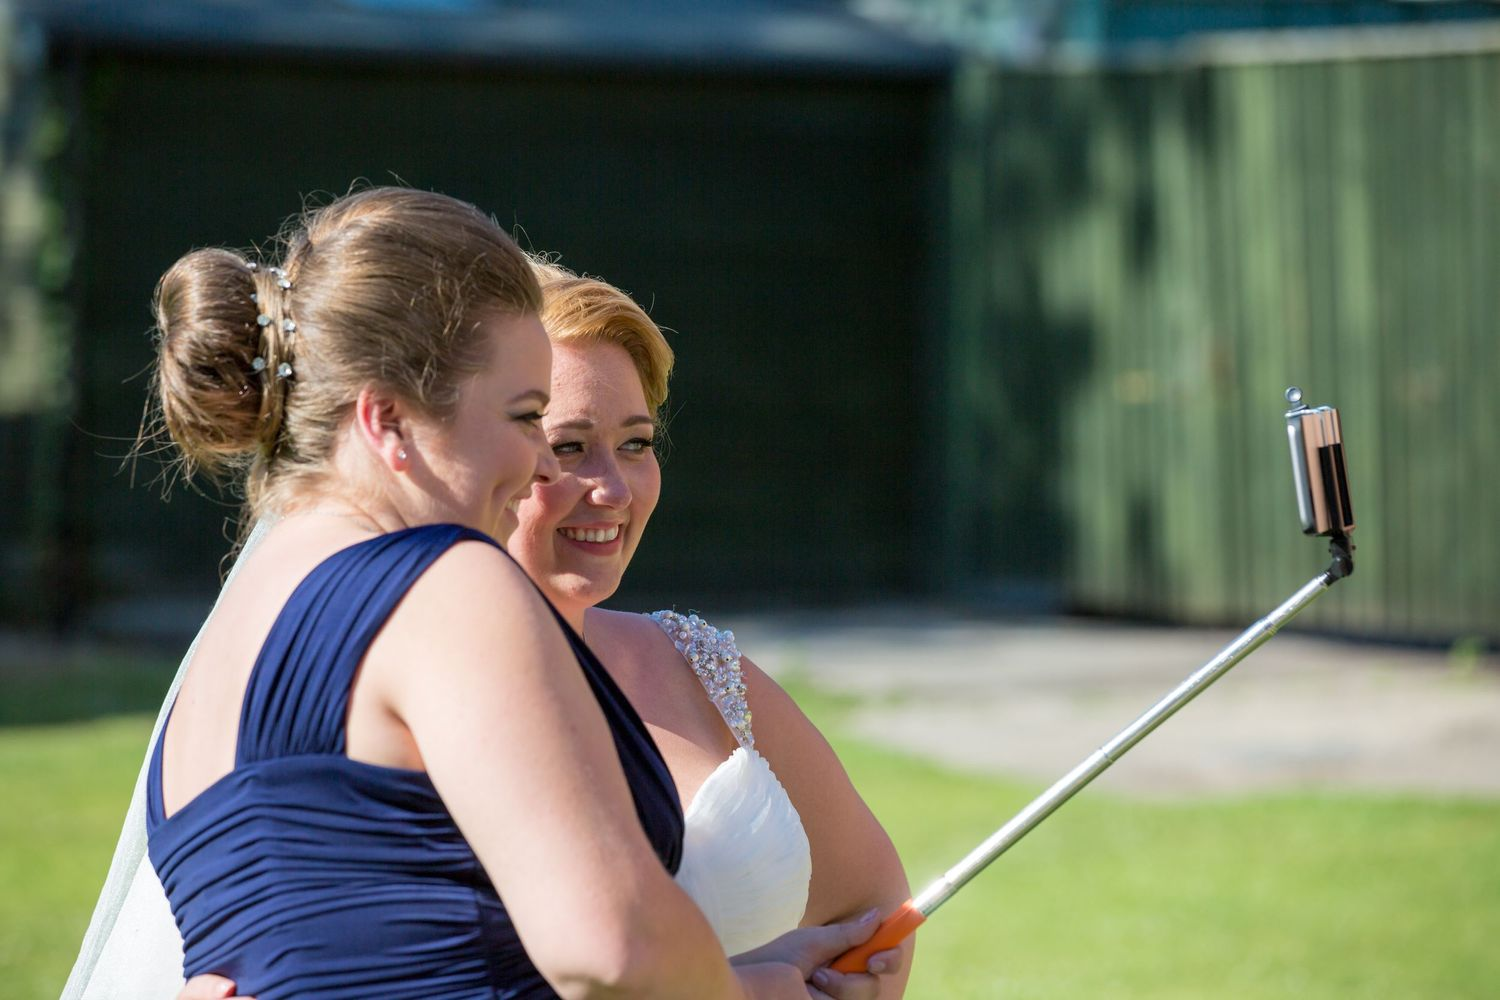 Bride and Bridesmaid use a selfie stick to take a photo on a phone at Briars Hall Wedding Venue Burscough near Ormskirk